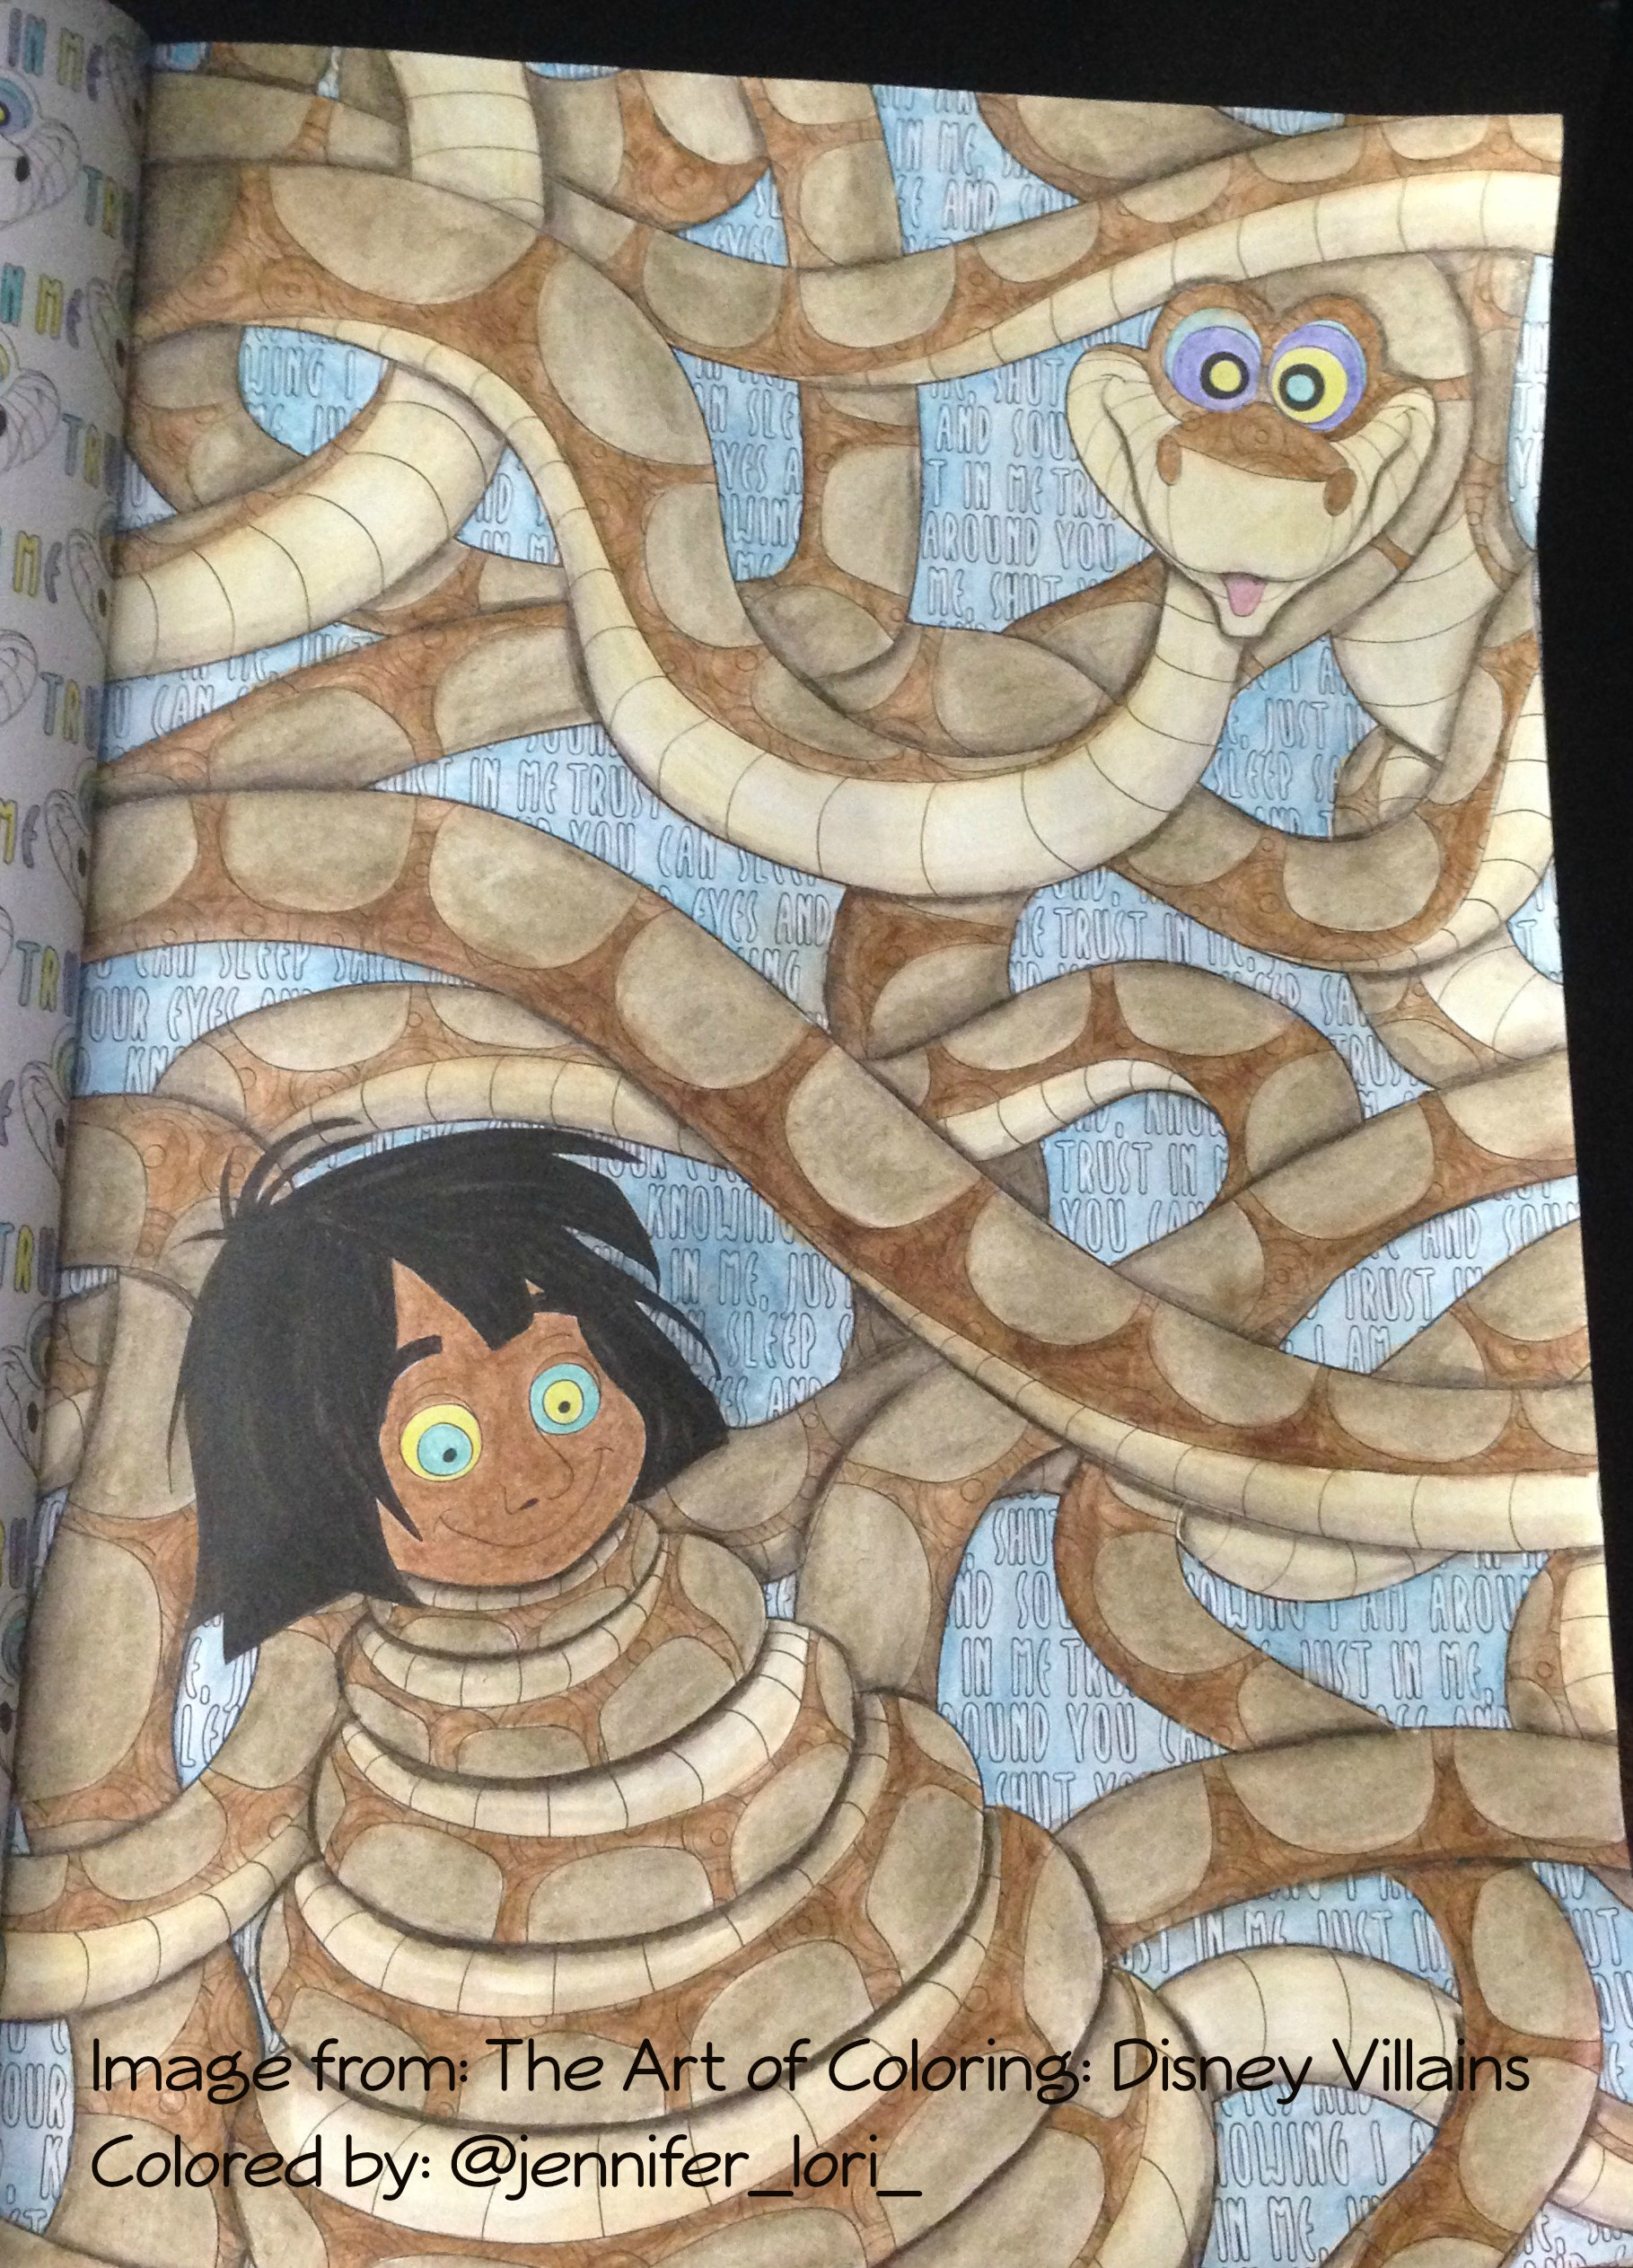 Coloring Mowgli And Kaa In The Art Of Coloring: Disney Villains With  Derwent Inktense Pencils |